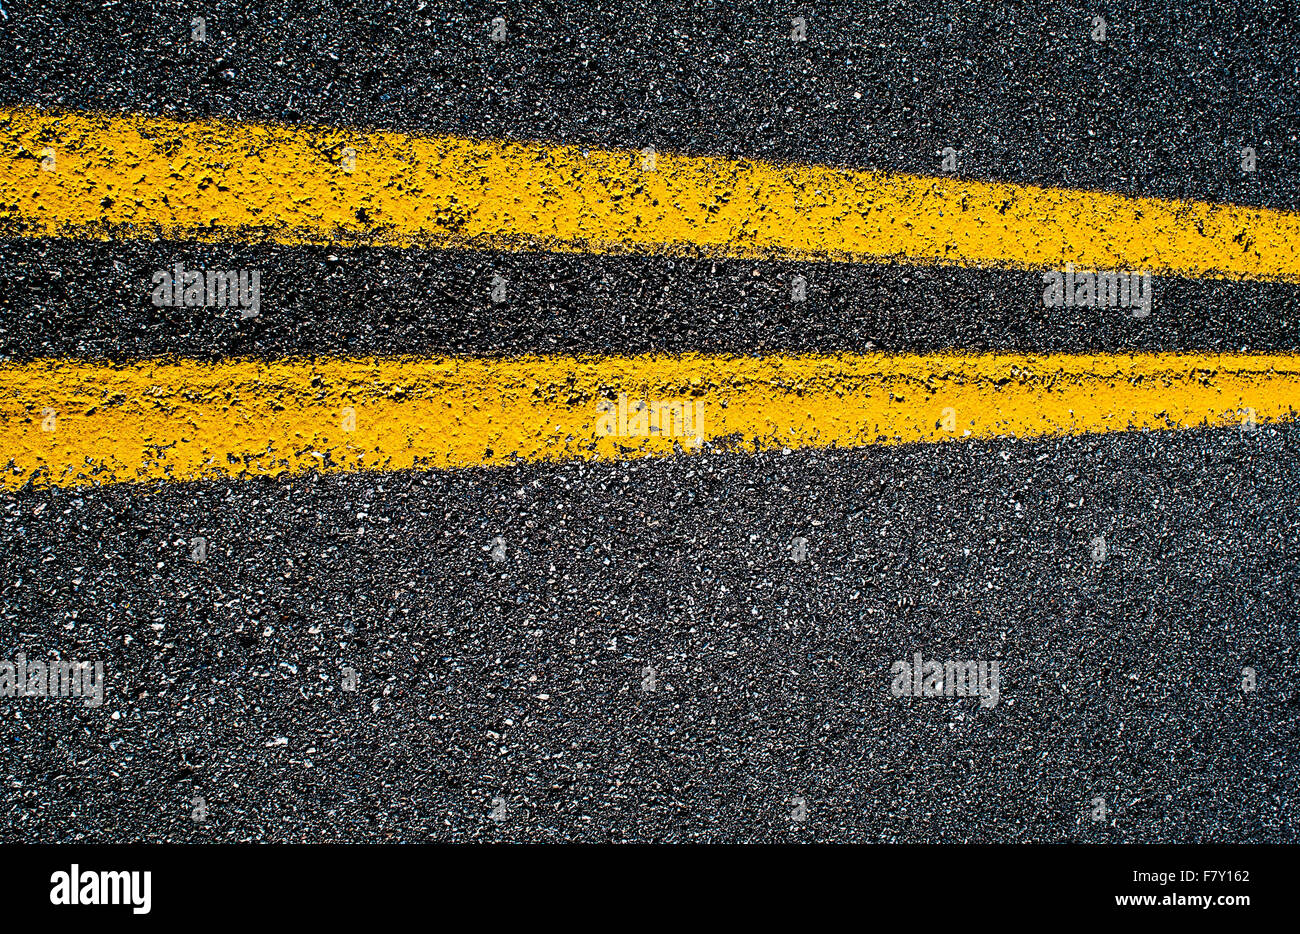 Closeup of a double yellow line on an asphalt road, horizontal. - Stock Image